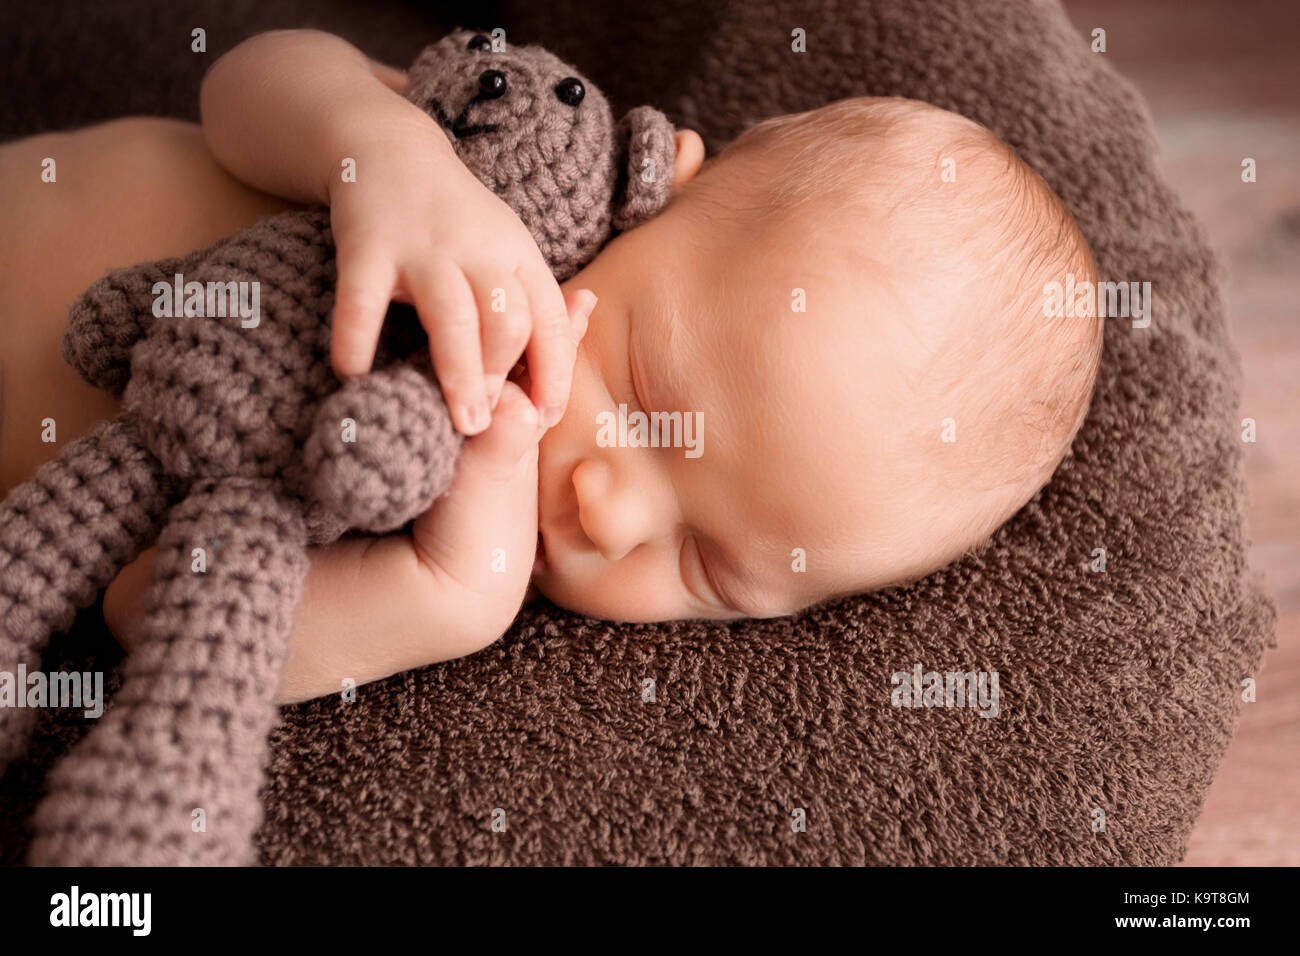 Newborn baby sleeping in a beautiful pose with a little bear - Stock Image